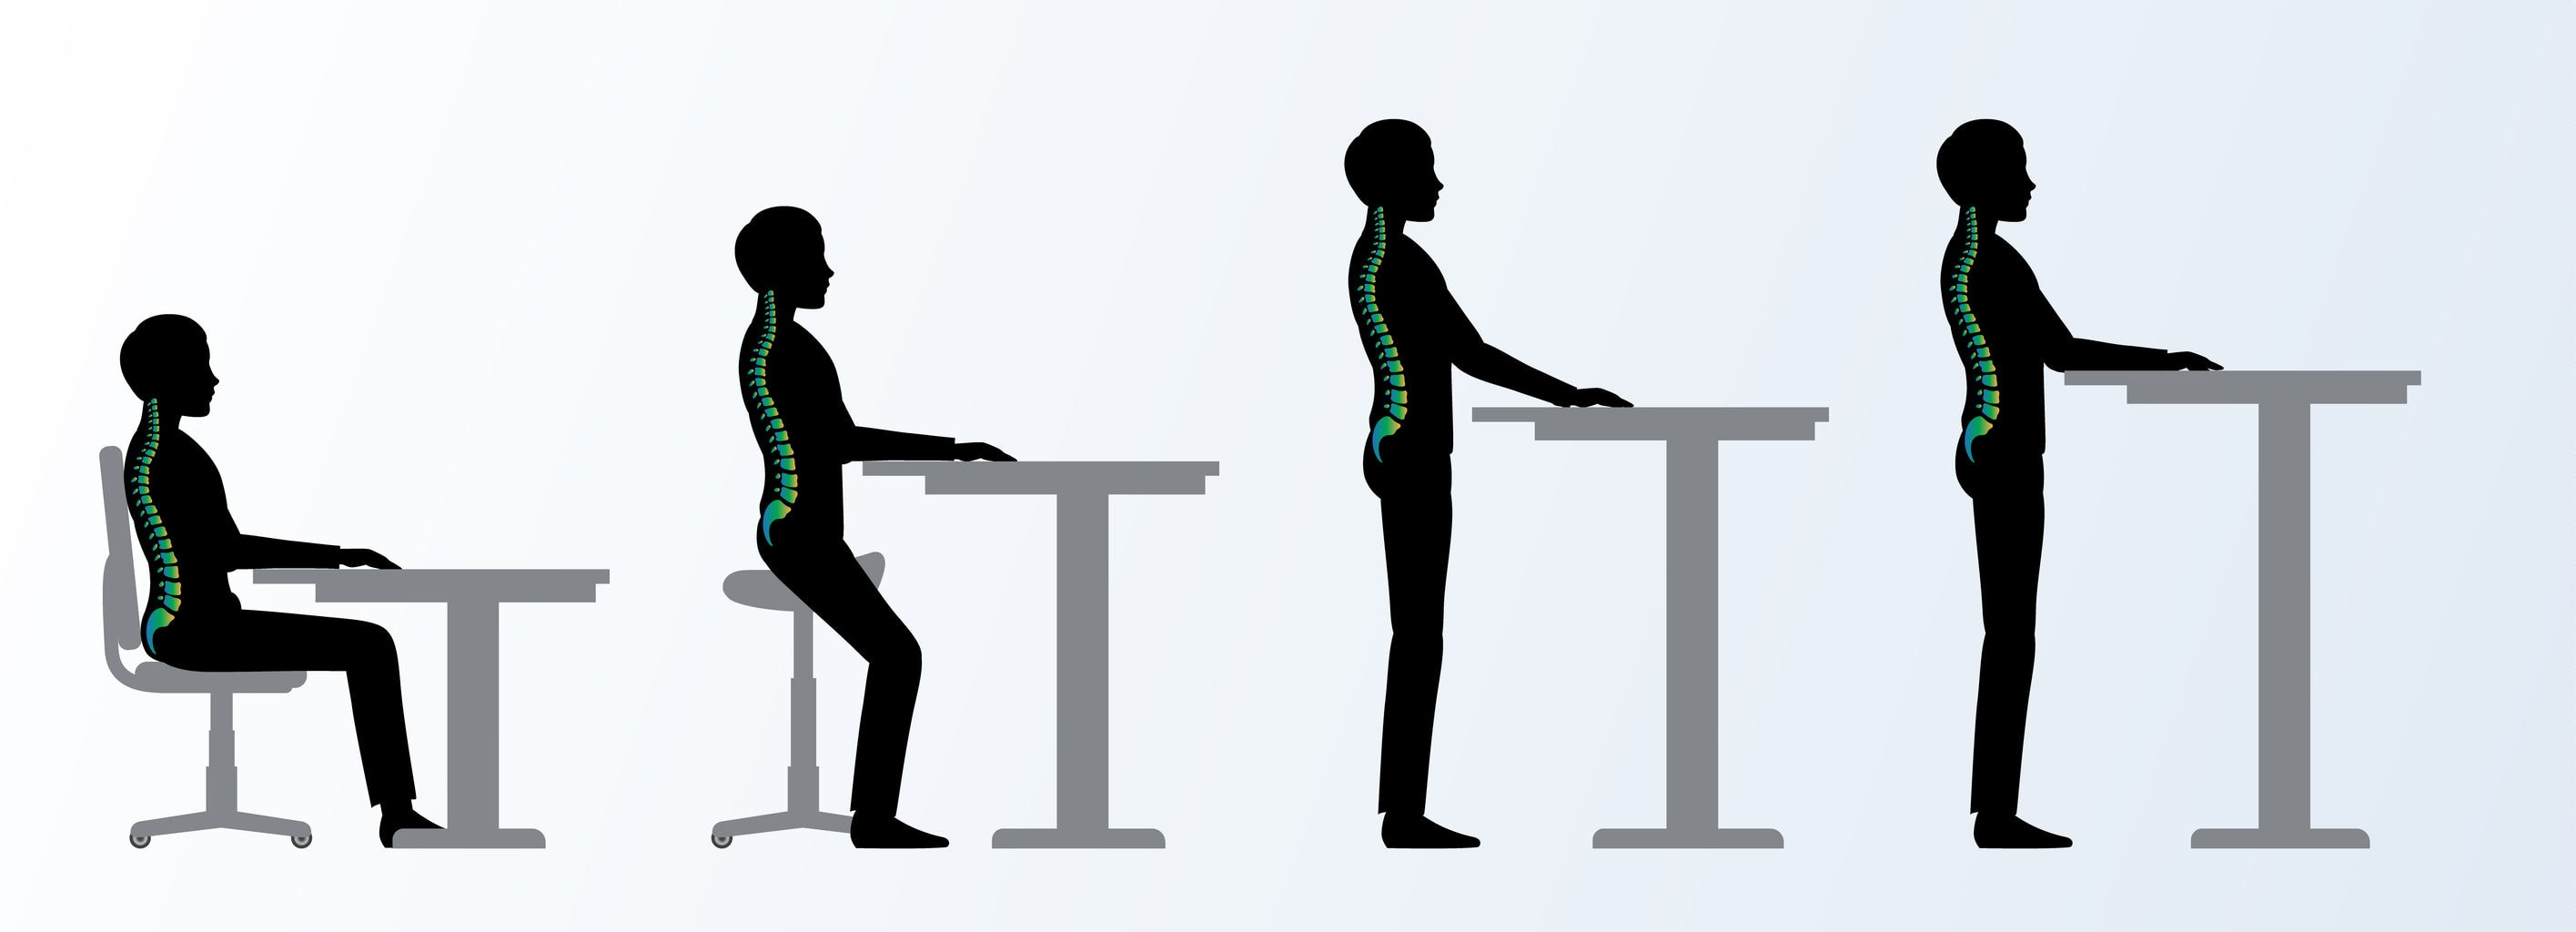 Ergonomically Correct Posture for Every Type of Desk Setup - Ergonomically Correct Posture for Sitting Desk and Standing Desk